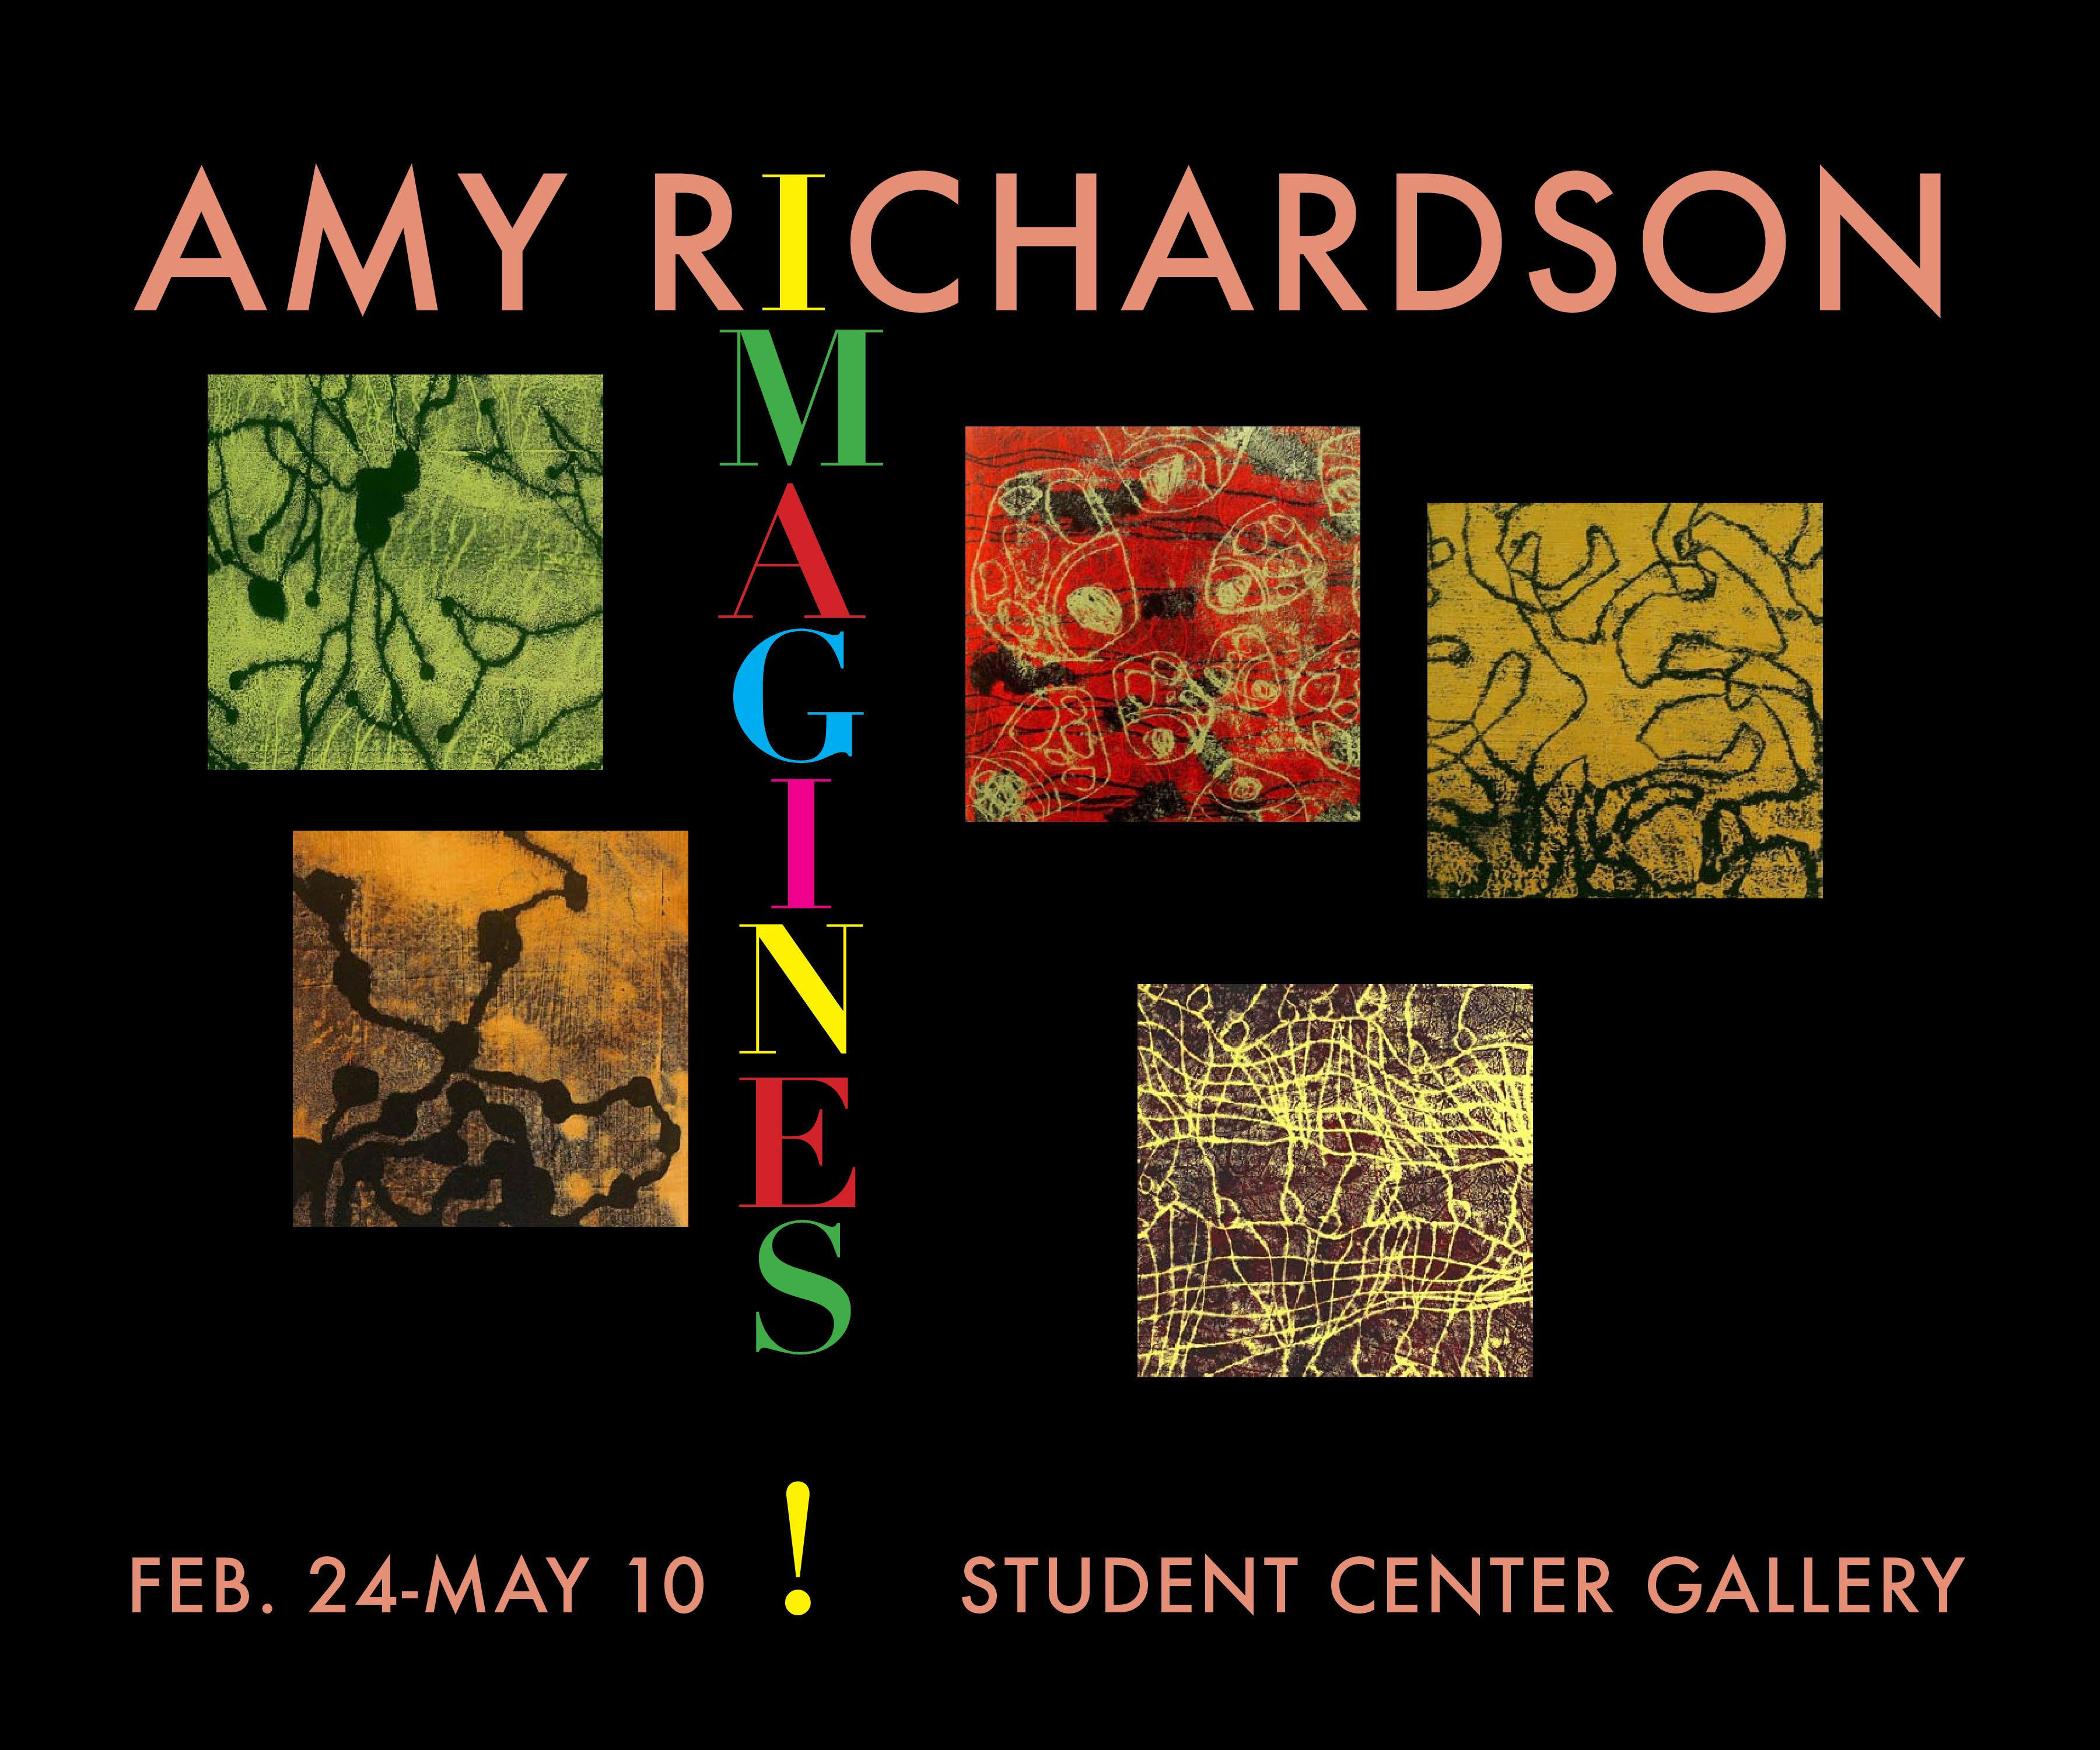 Amy Richardson Exhibit - Opening Reception